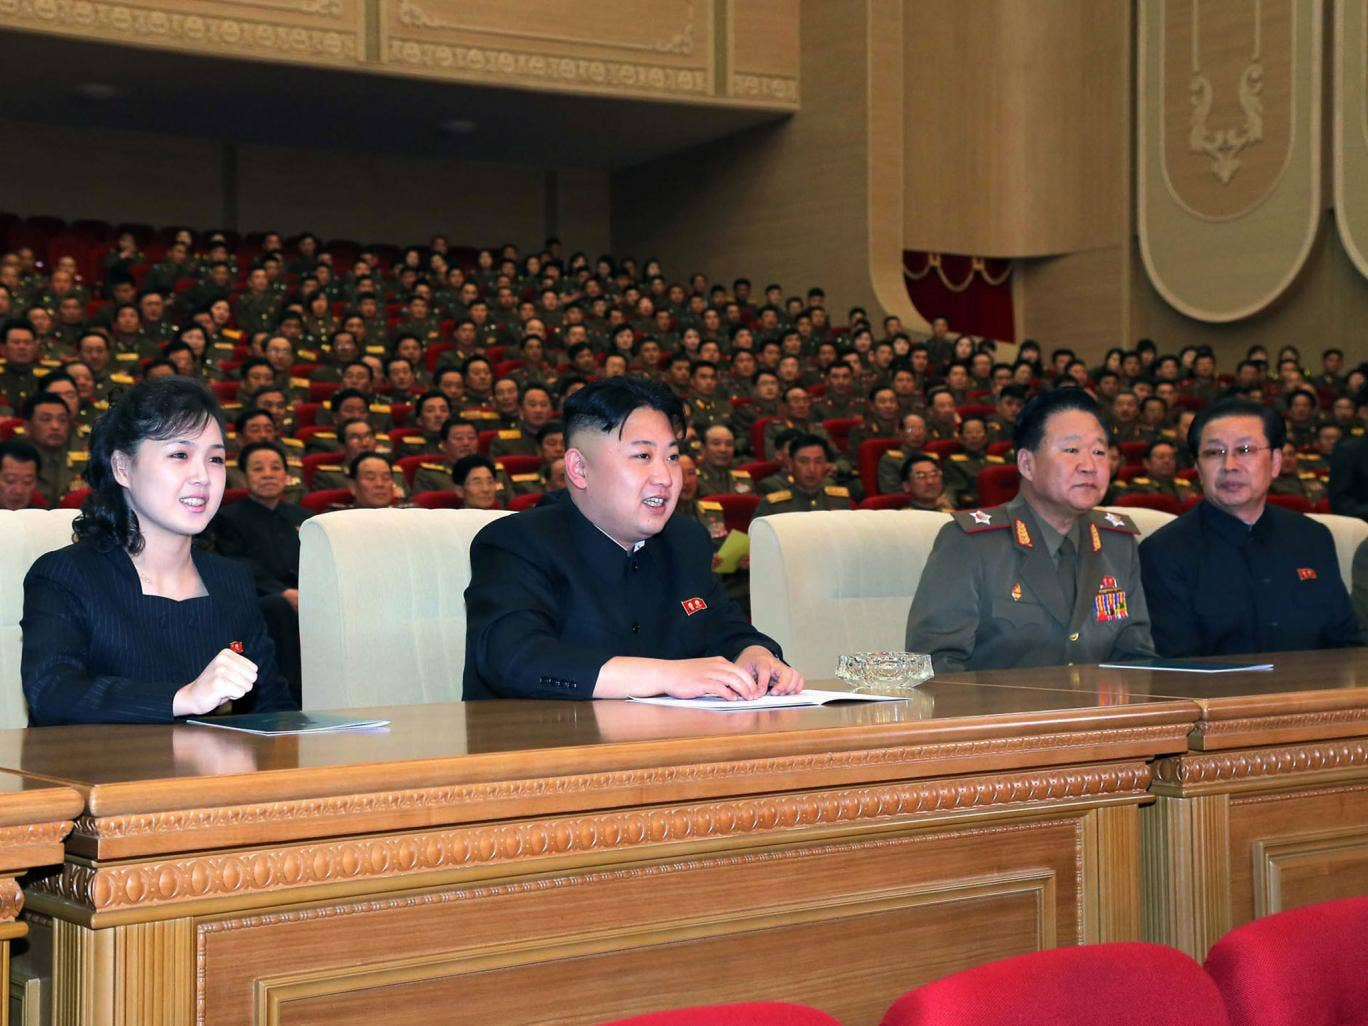 This undated picture, released by North Korea's official Korean Central News Agency (KCNA) on May 13, 2013 shows North Korean leader Kim Jong Un (C), accompanied by his wife Ri Sol Ju (L), enjoying performance given by the Song and Dance Ensemble of the K